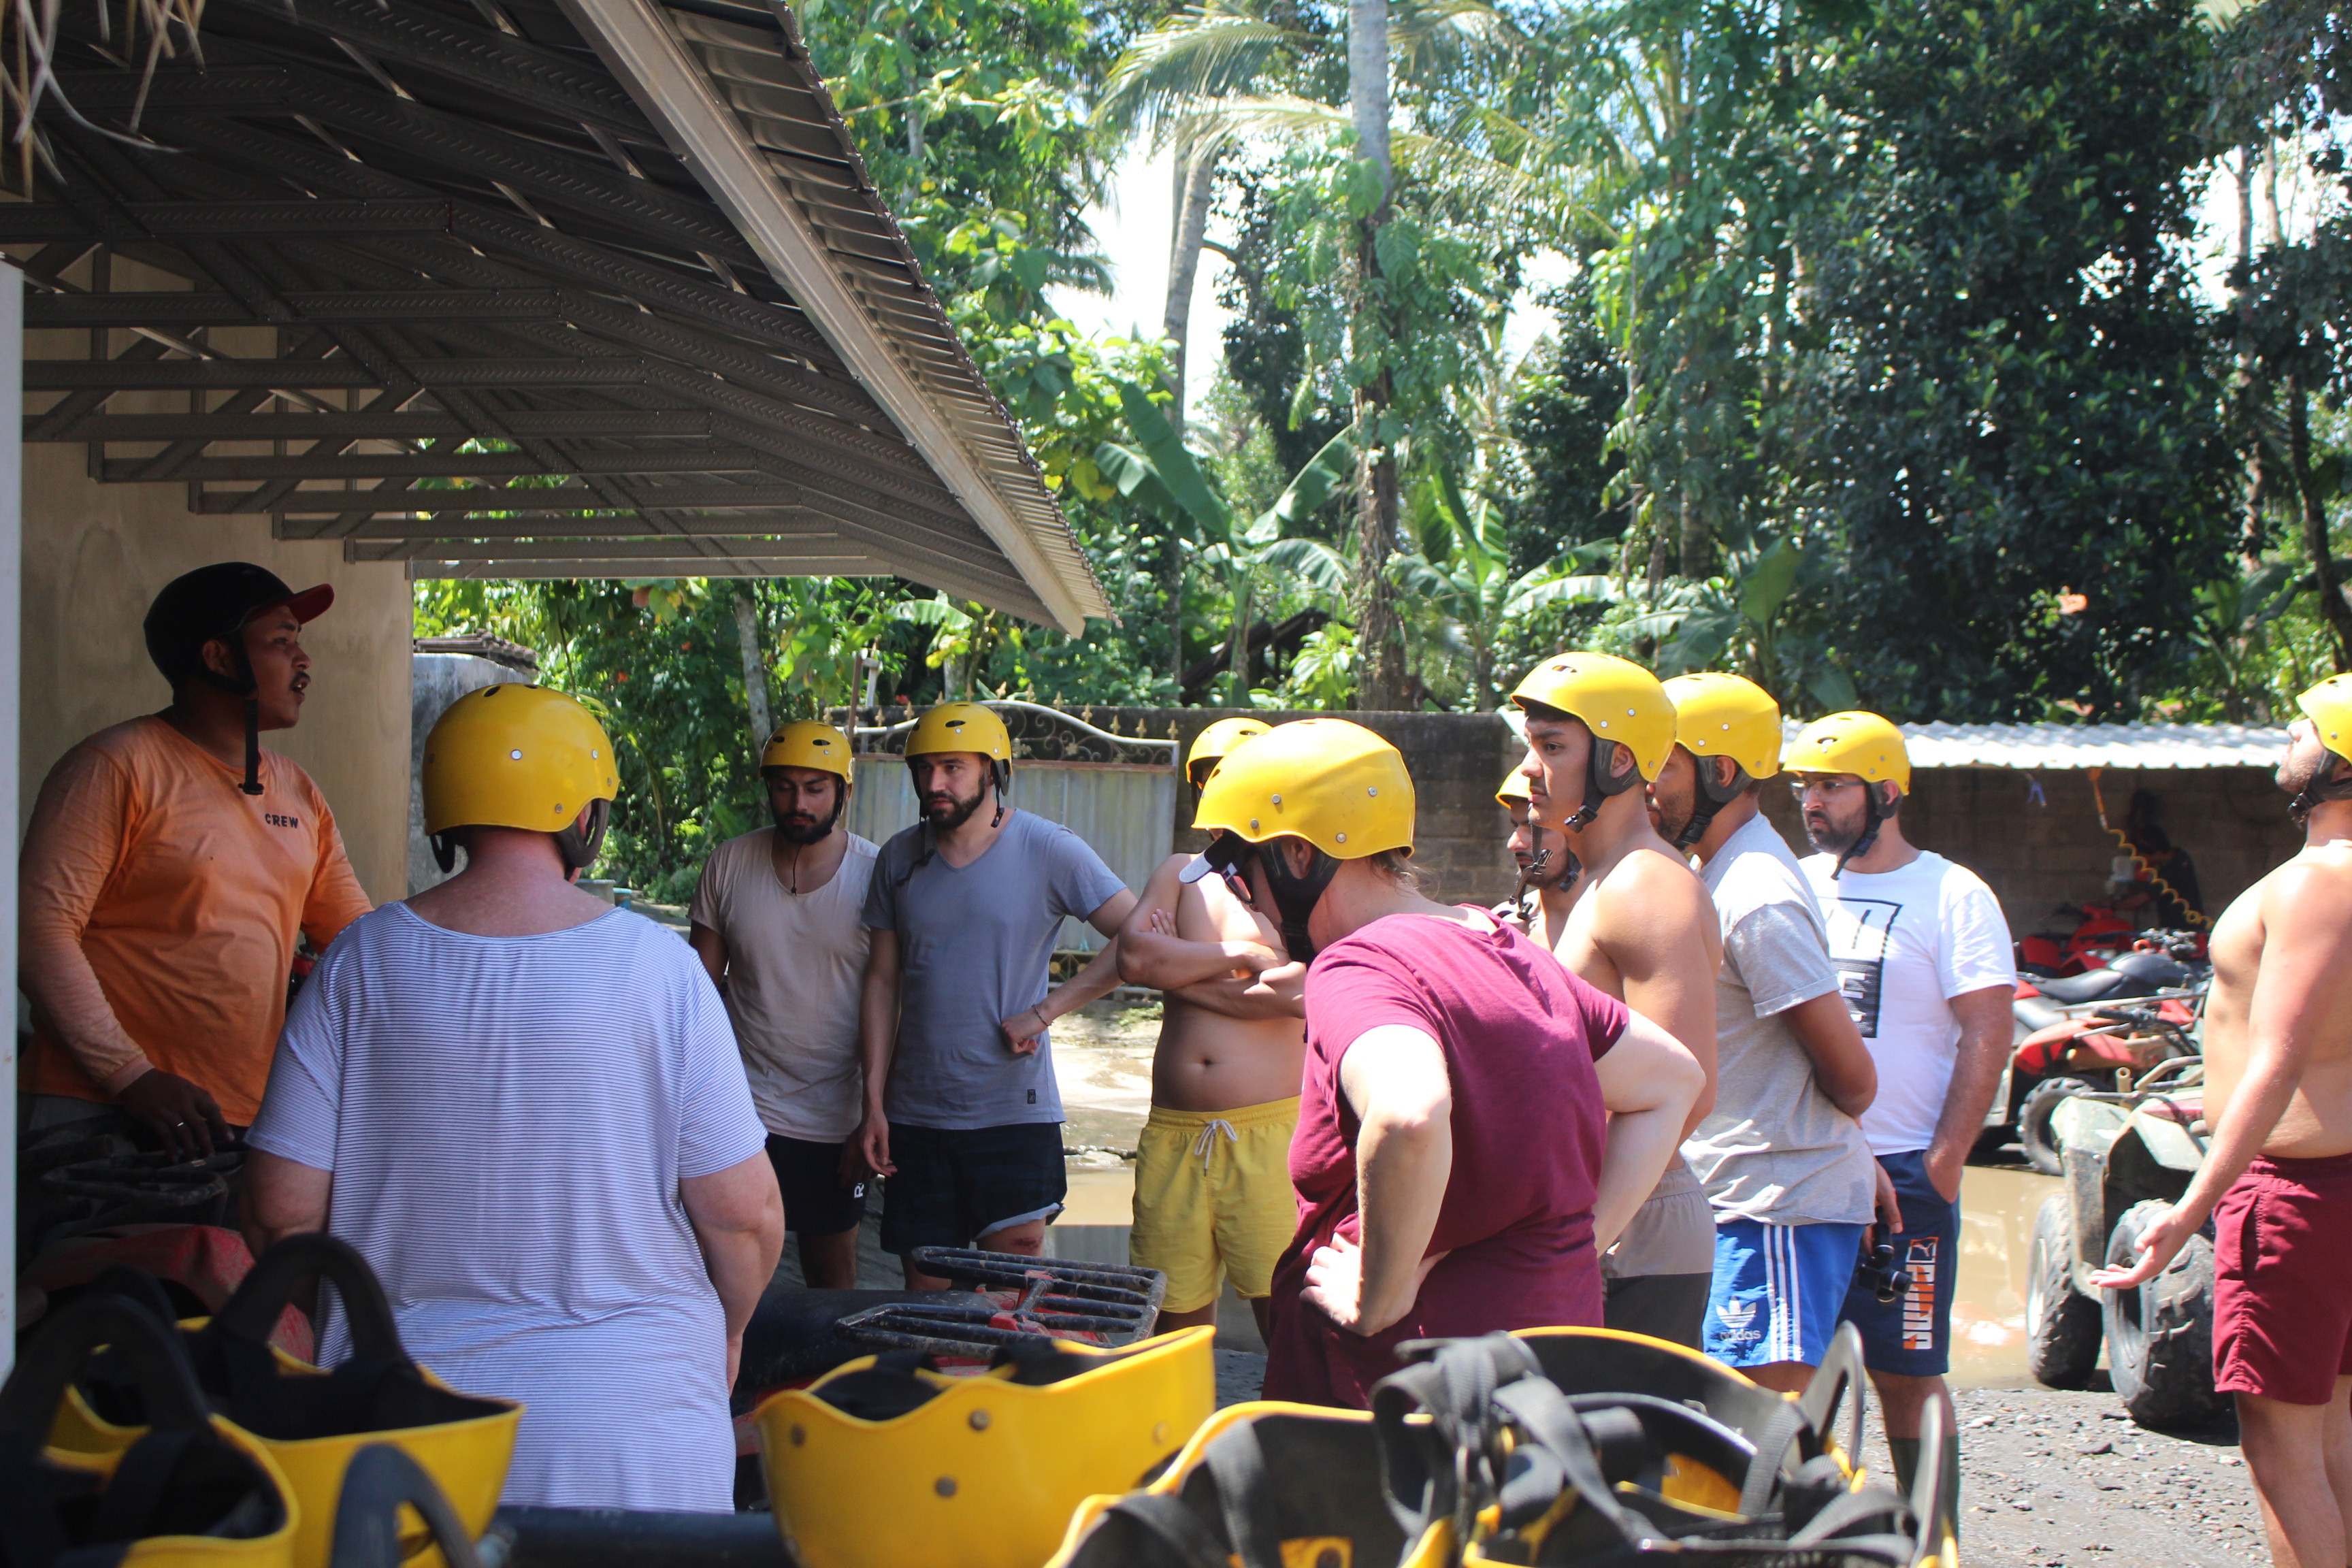 Gearing up for the ATV ride